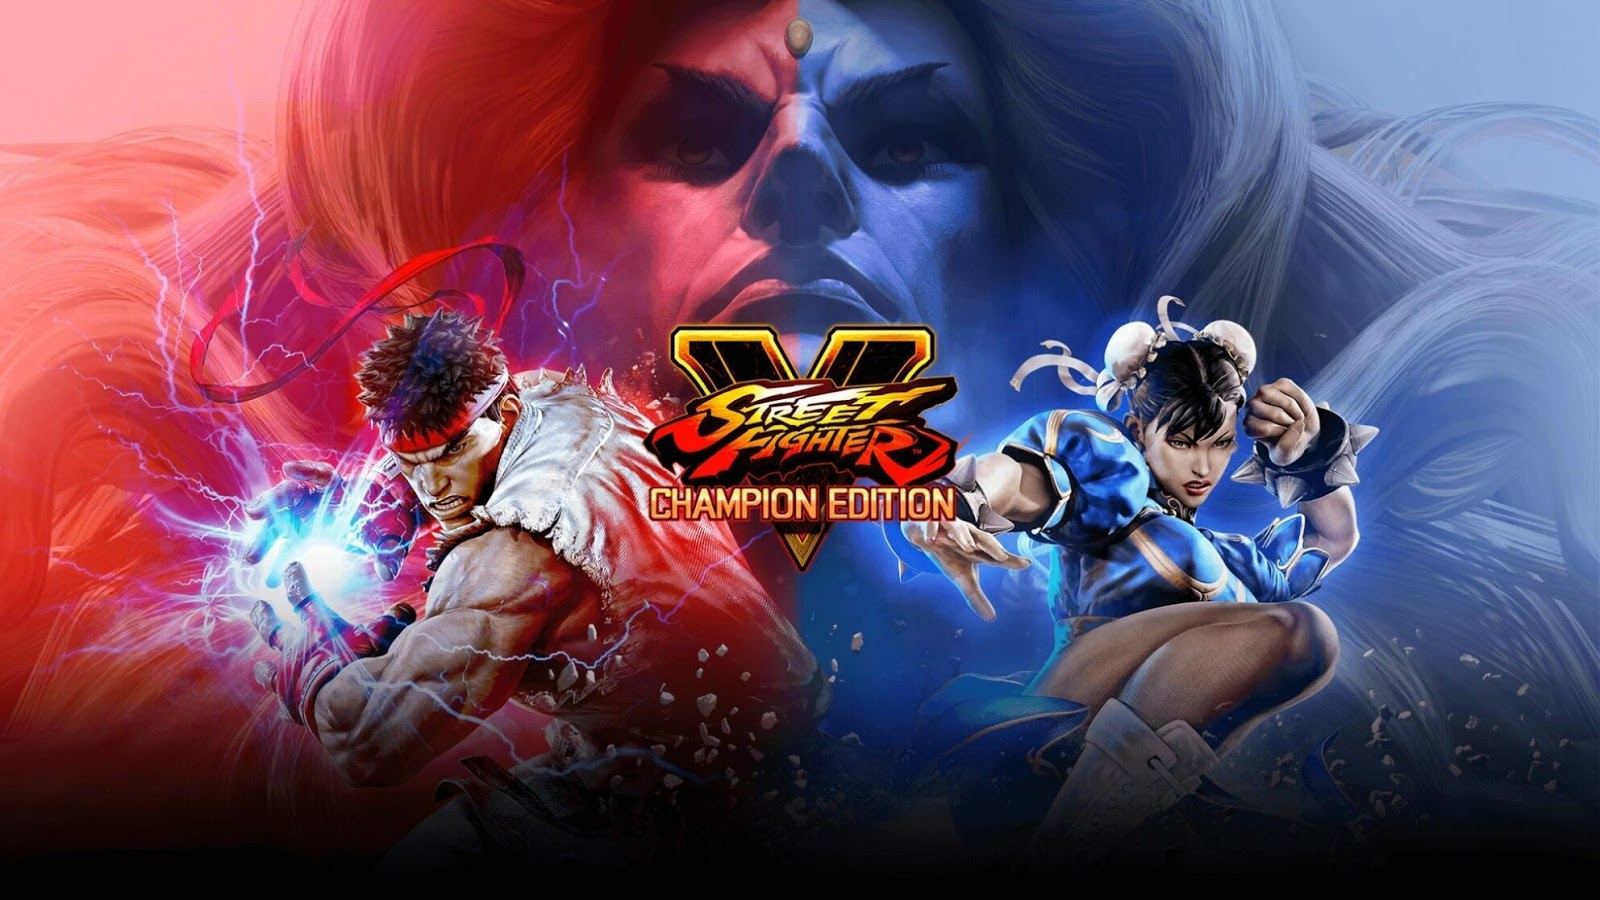 Street Fighter Betting Sites